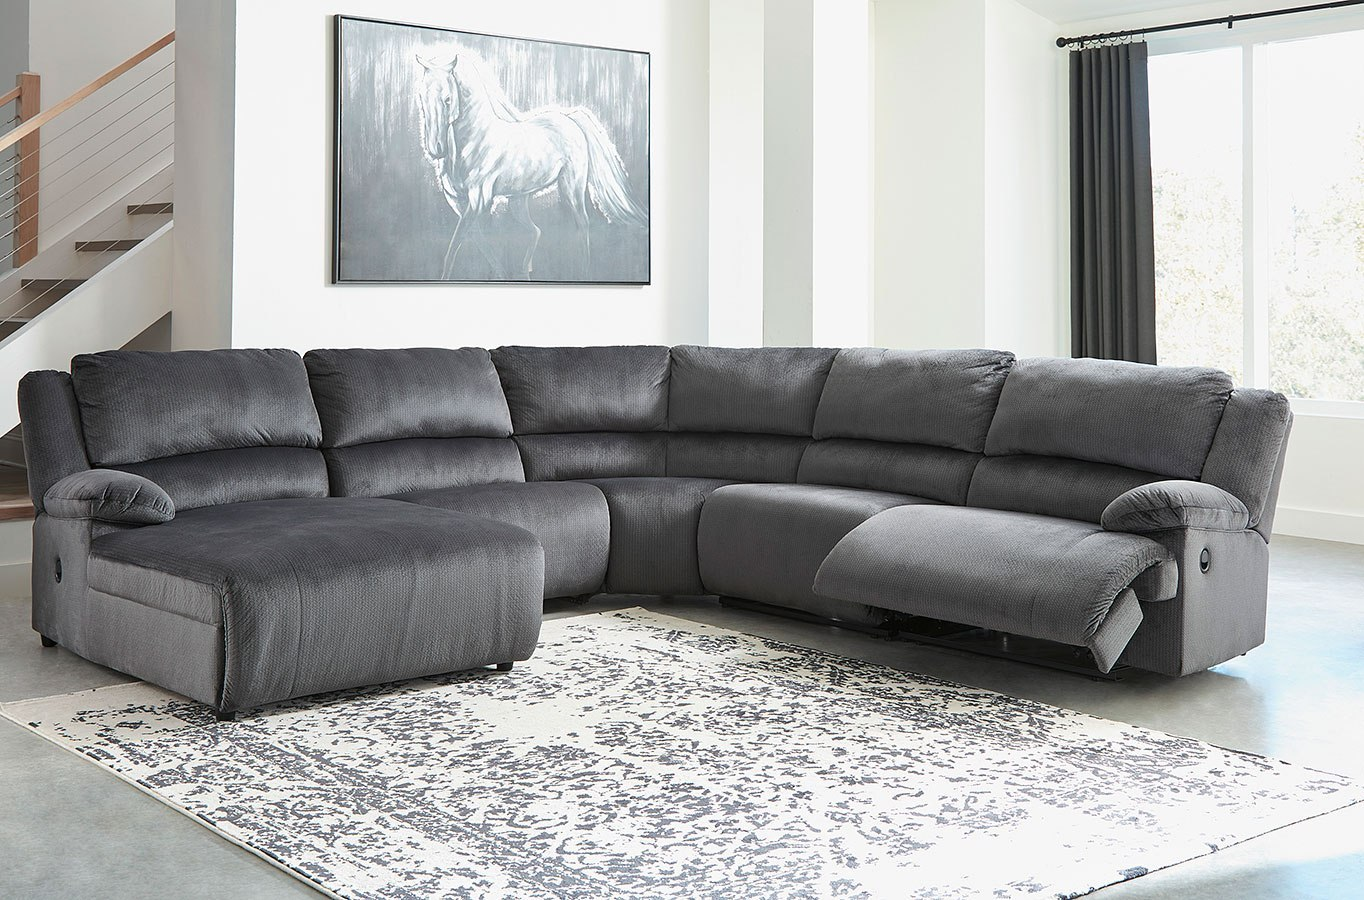 Clonmel Charcoal Modular Reclining Sectional By Signature